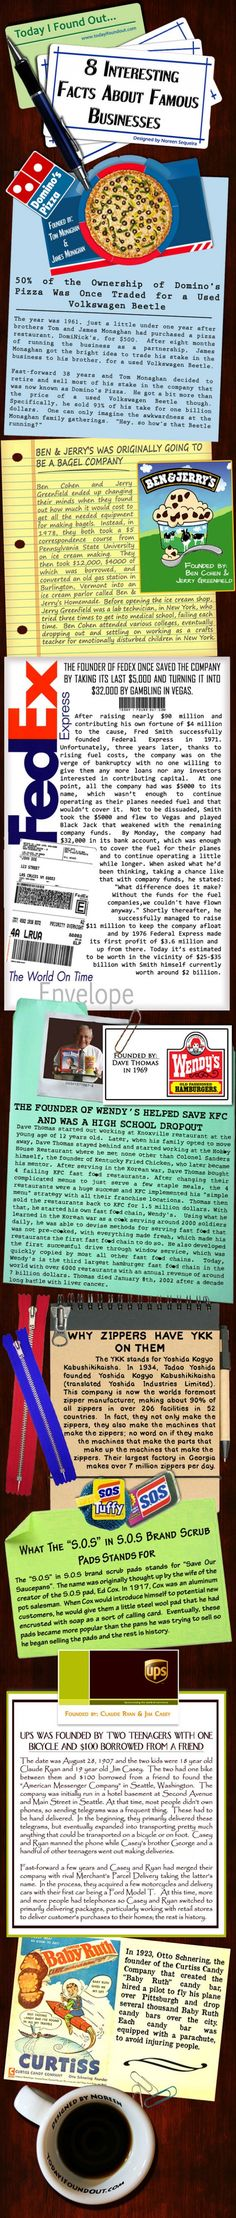 8 CRAZY Facts You Didn't Know About These Famous Businesses | Infographic